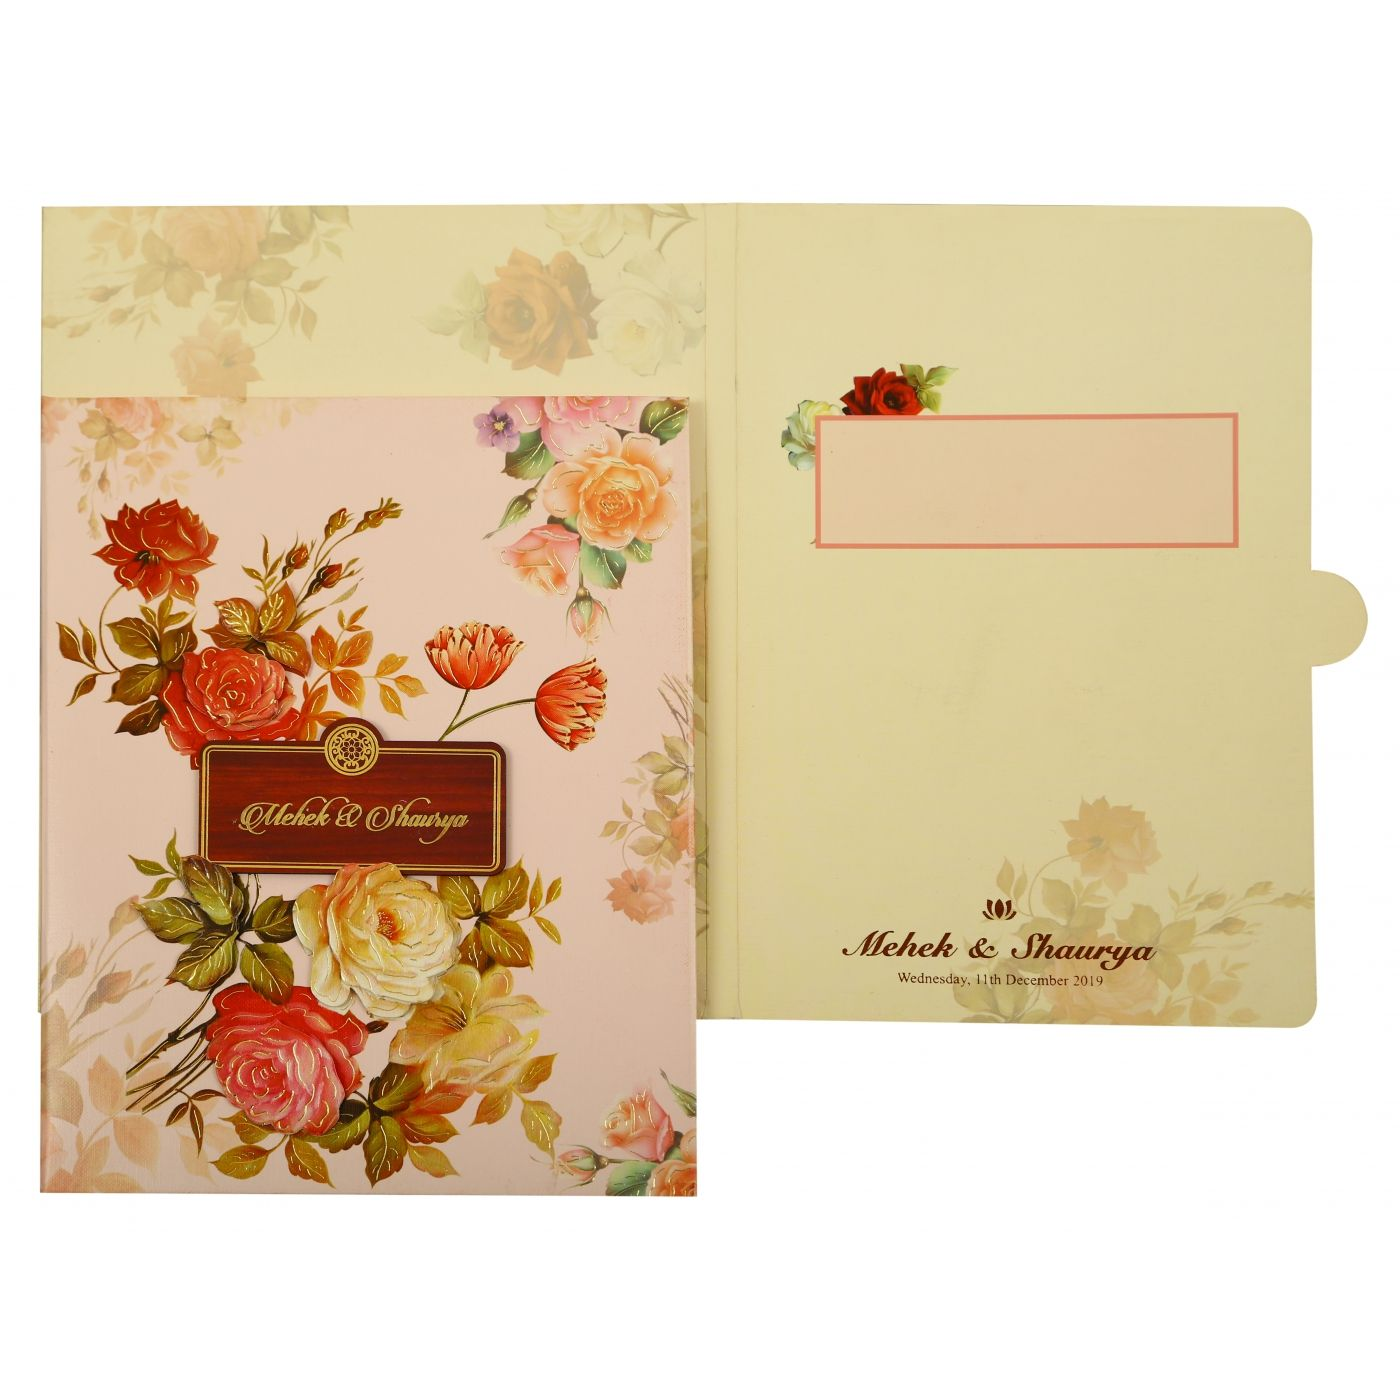 OFF-WHITE SHIMMERY BOX THEMED - FOIL STAMPED WEDDING INVITATION : CG-1865 - IndianWeddingCards